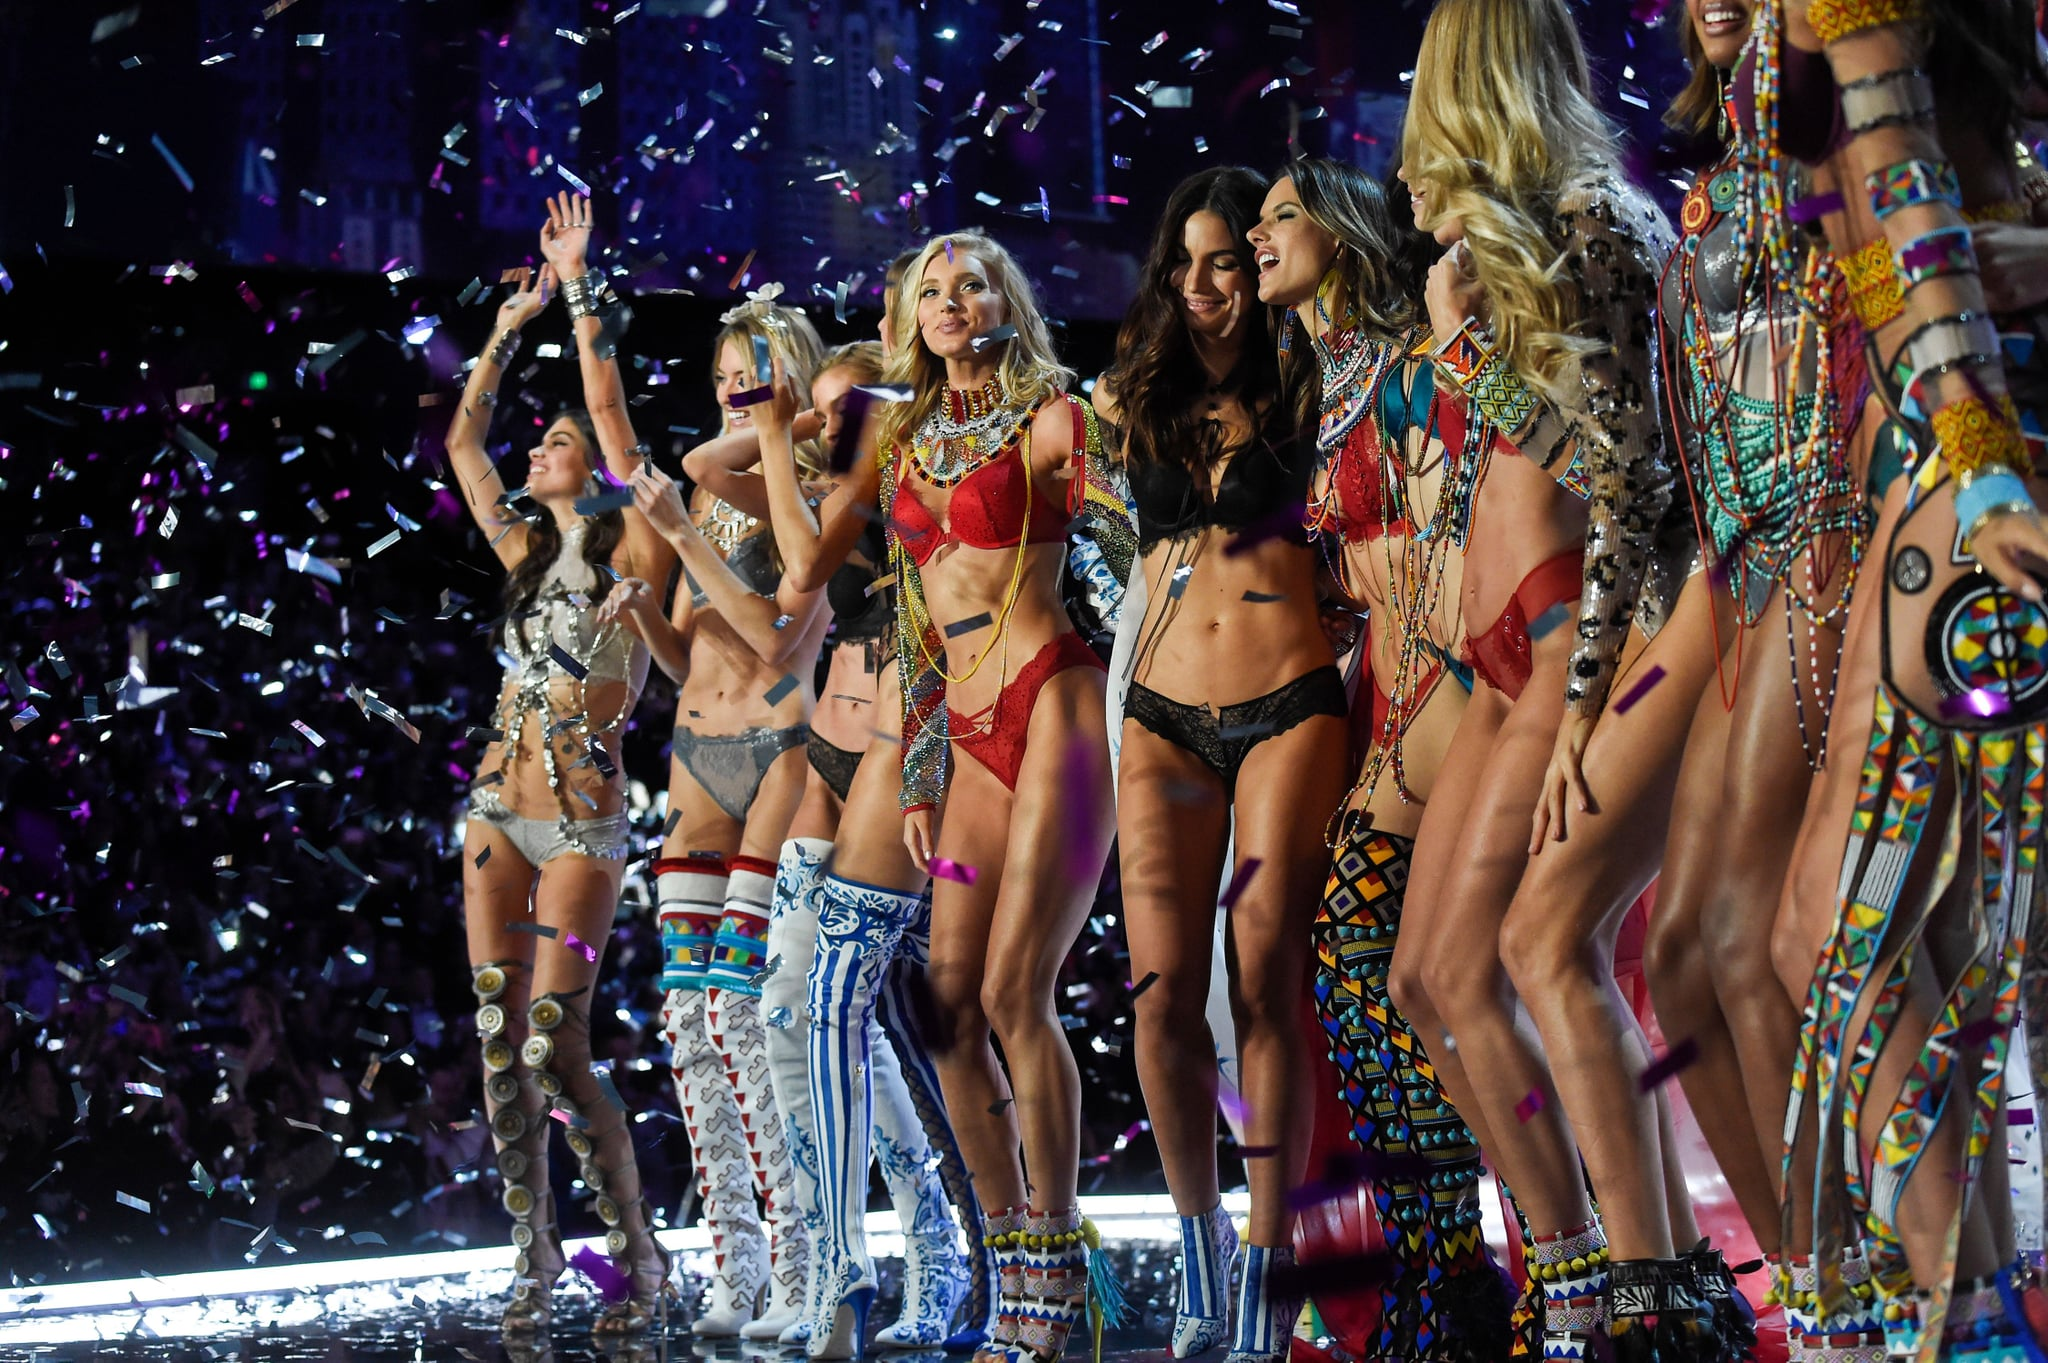 f7e16b9978ad9 Lack of Plus-Size Models in Victoria s Secret Fashion Show ...